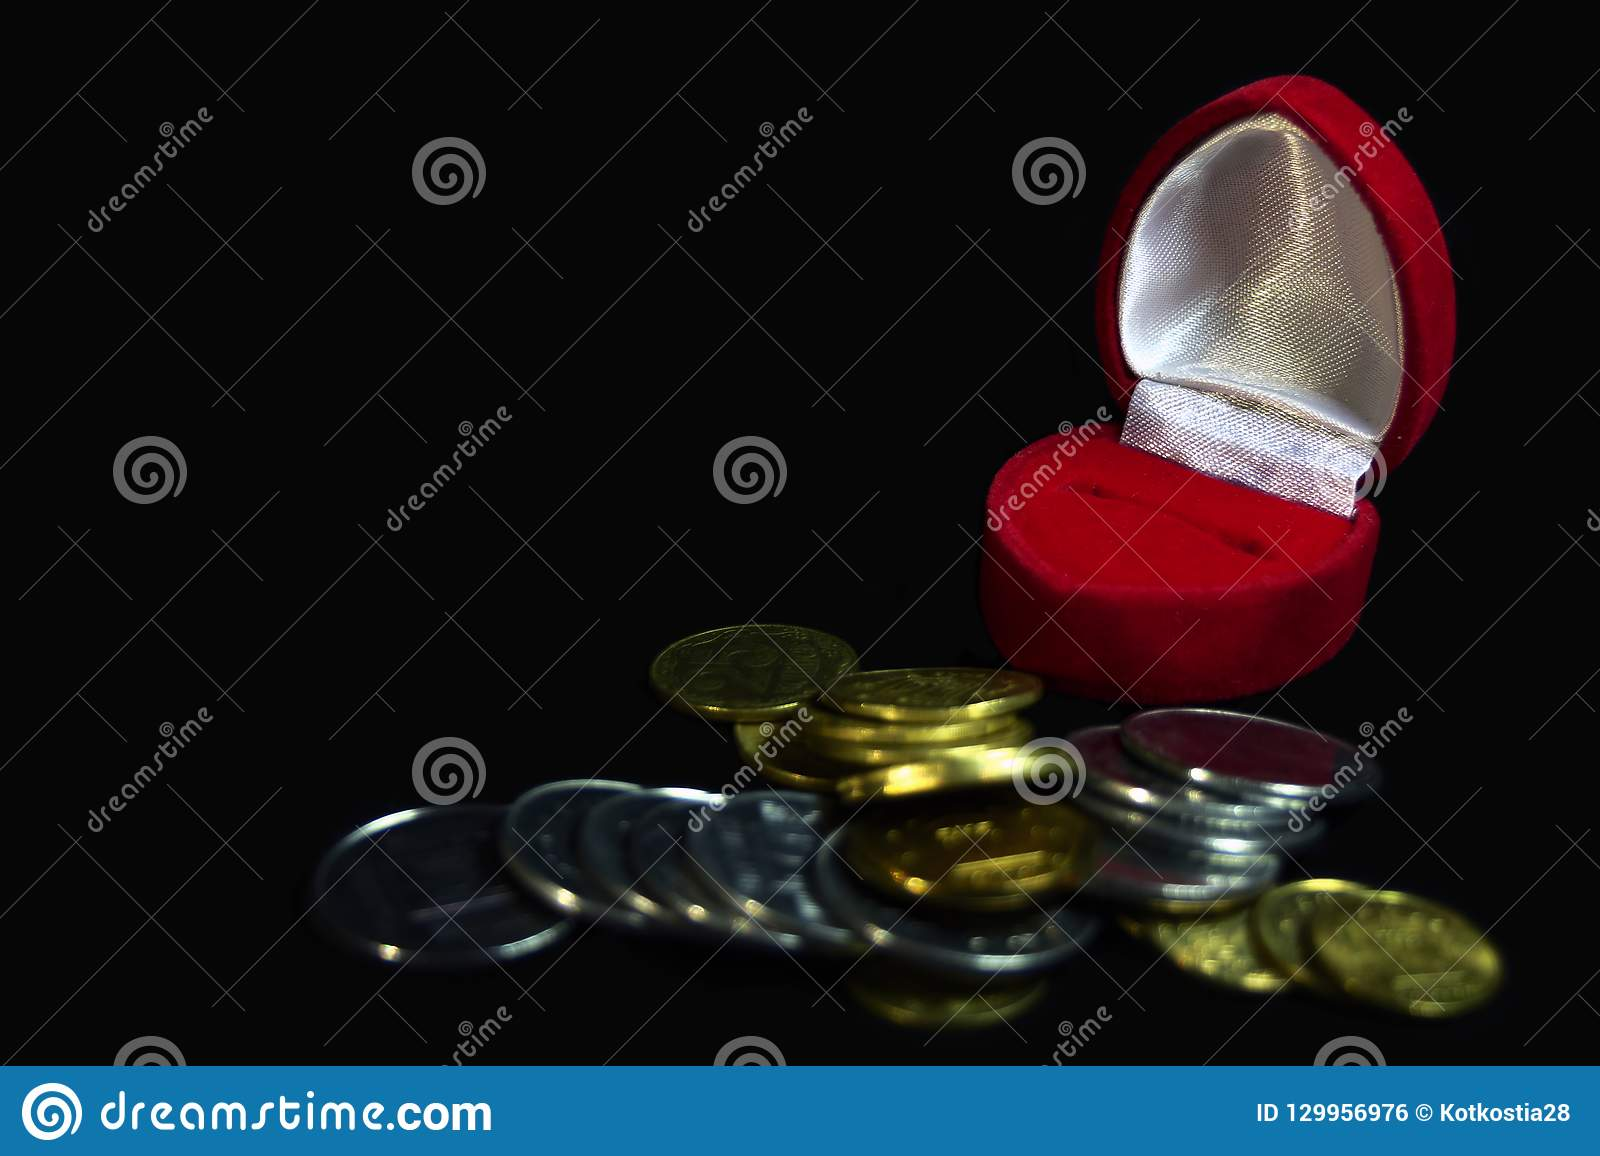 Red velvet gift box for a ring on a black background with coins of different denominations symbolizing a marriage of convenience,